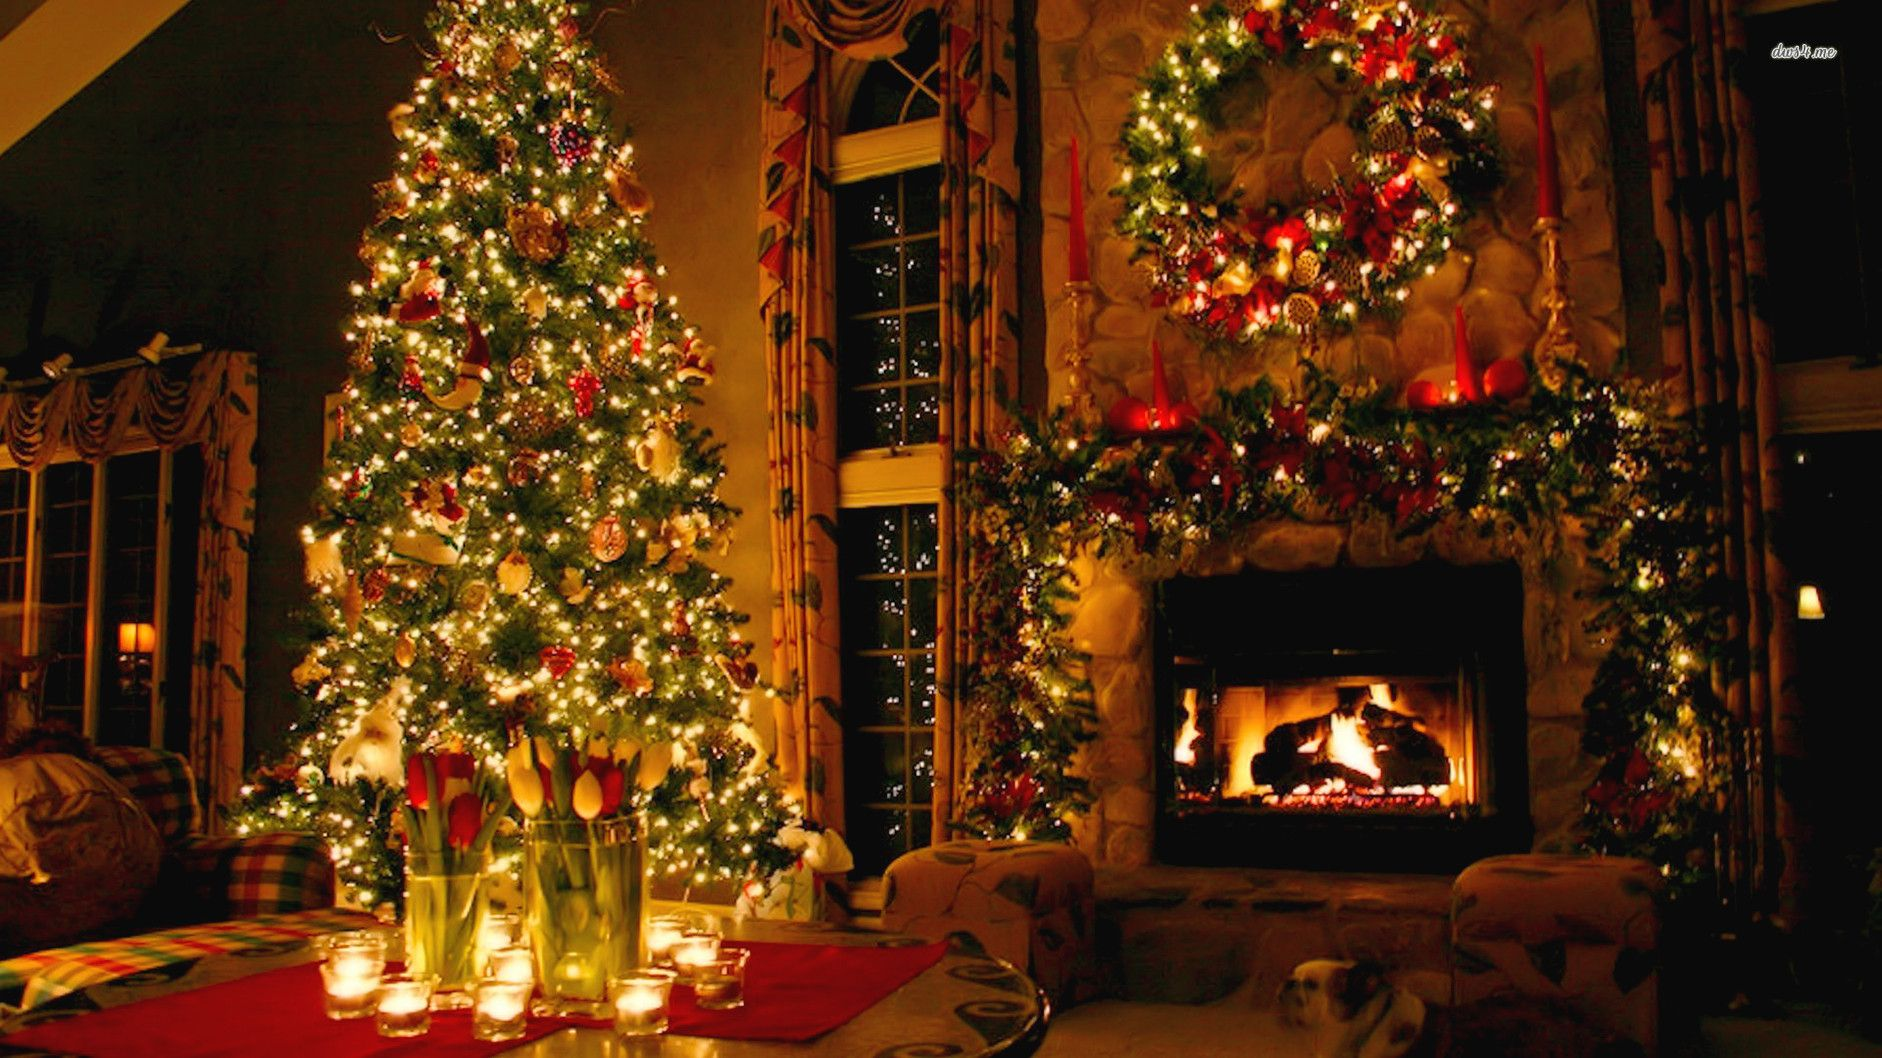 Christmas fireplace background   SF Wallpaper 1882x1058